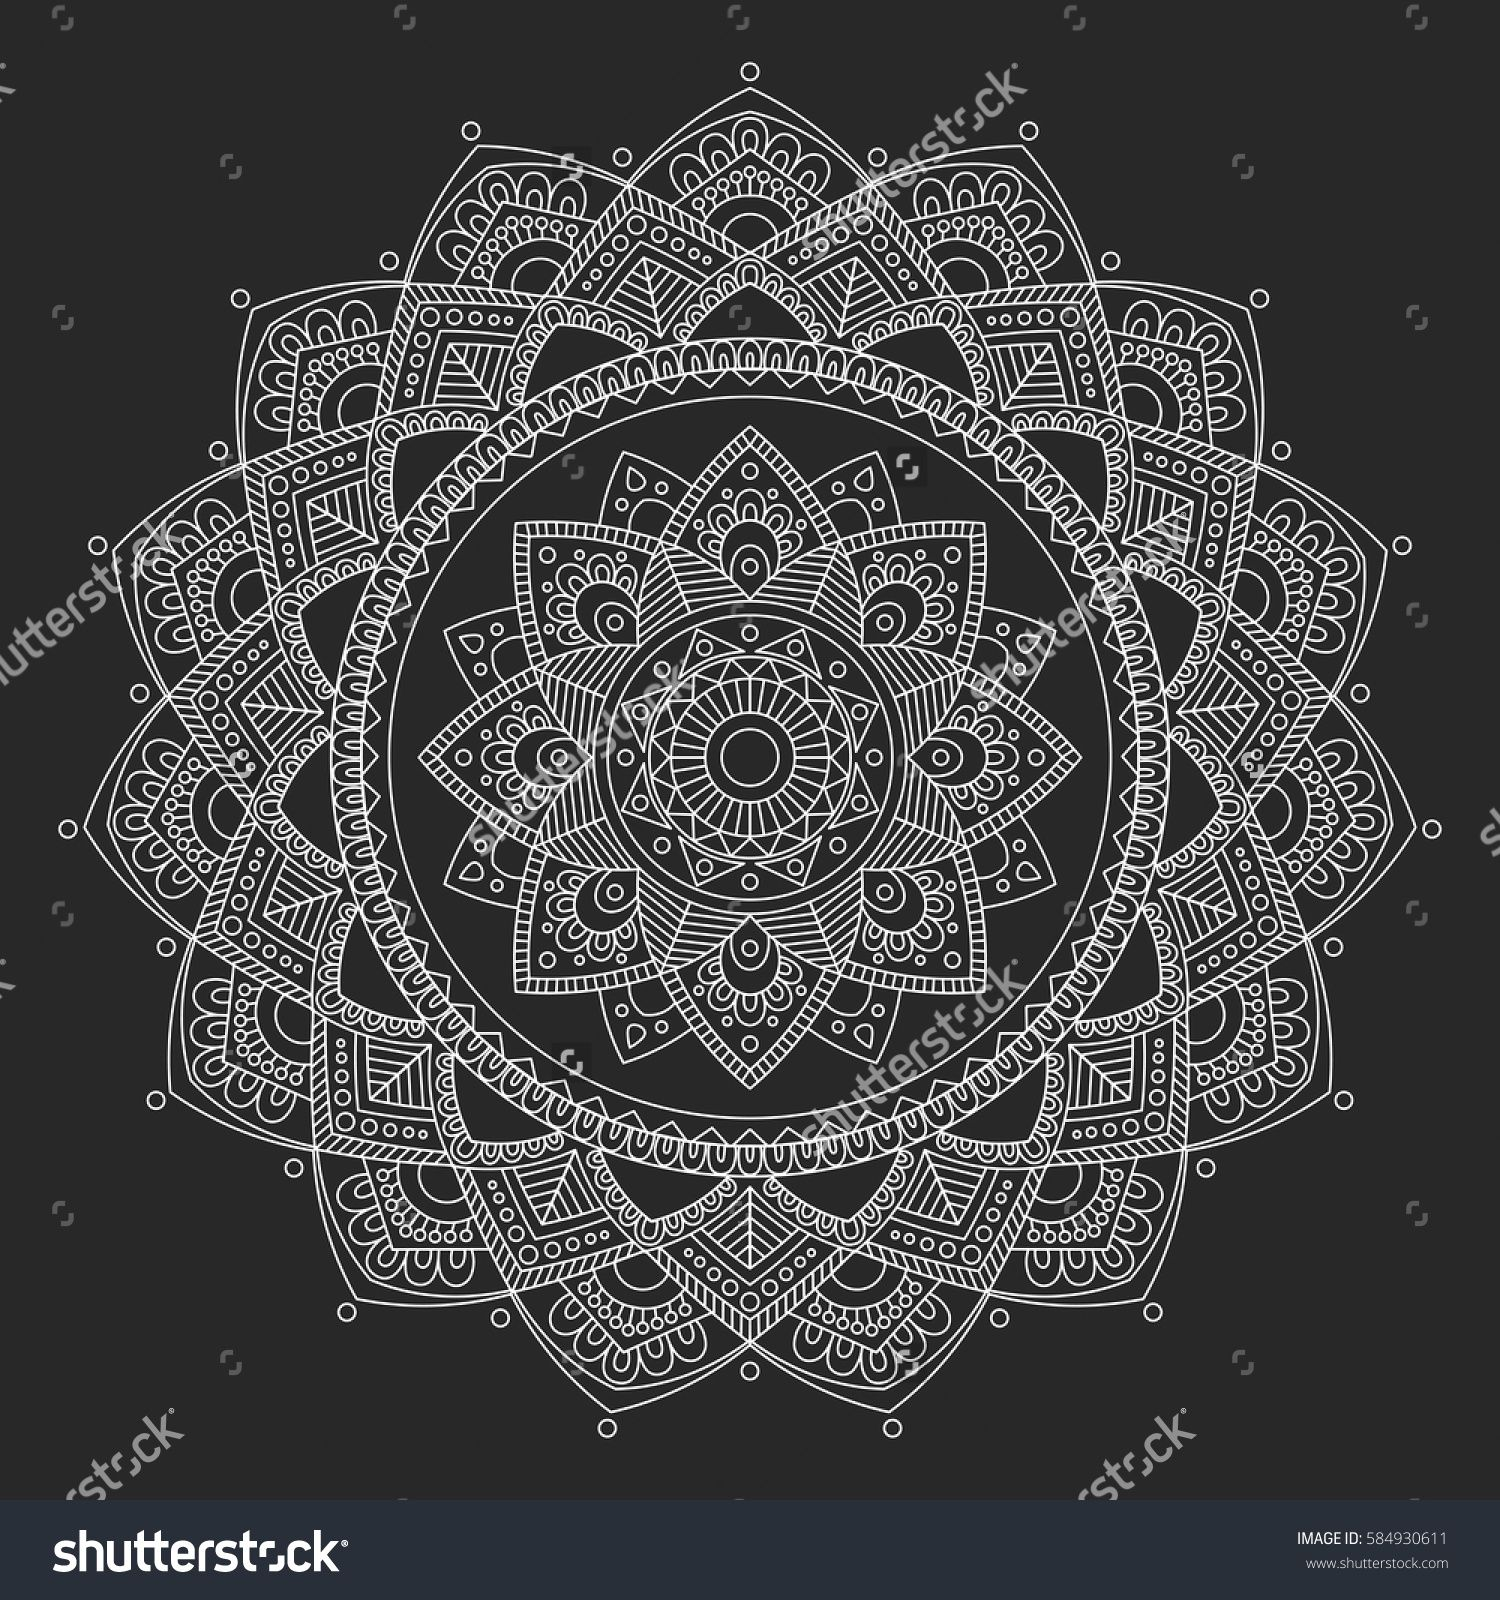 Mandala Coloring Book Pages Indian Antistress Medallion Abstract Islamic Flower Arabic Henna Design Yoga Symbol Vector Illustration